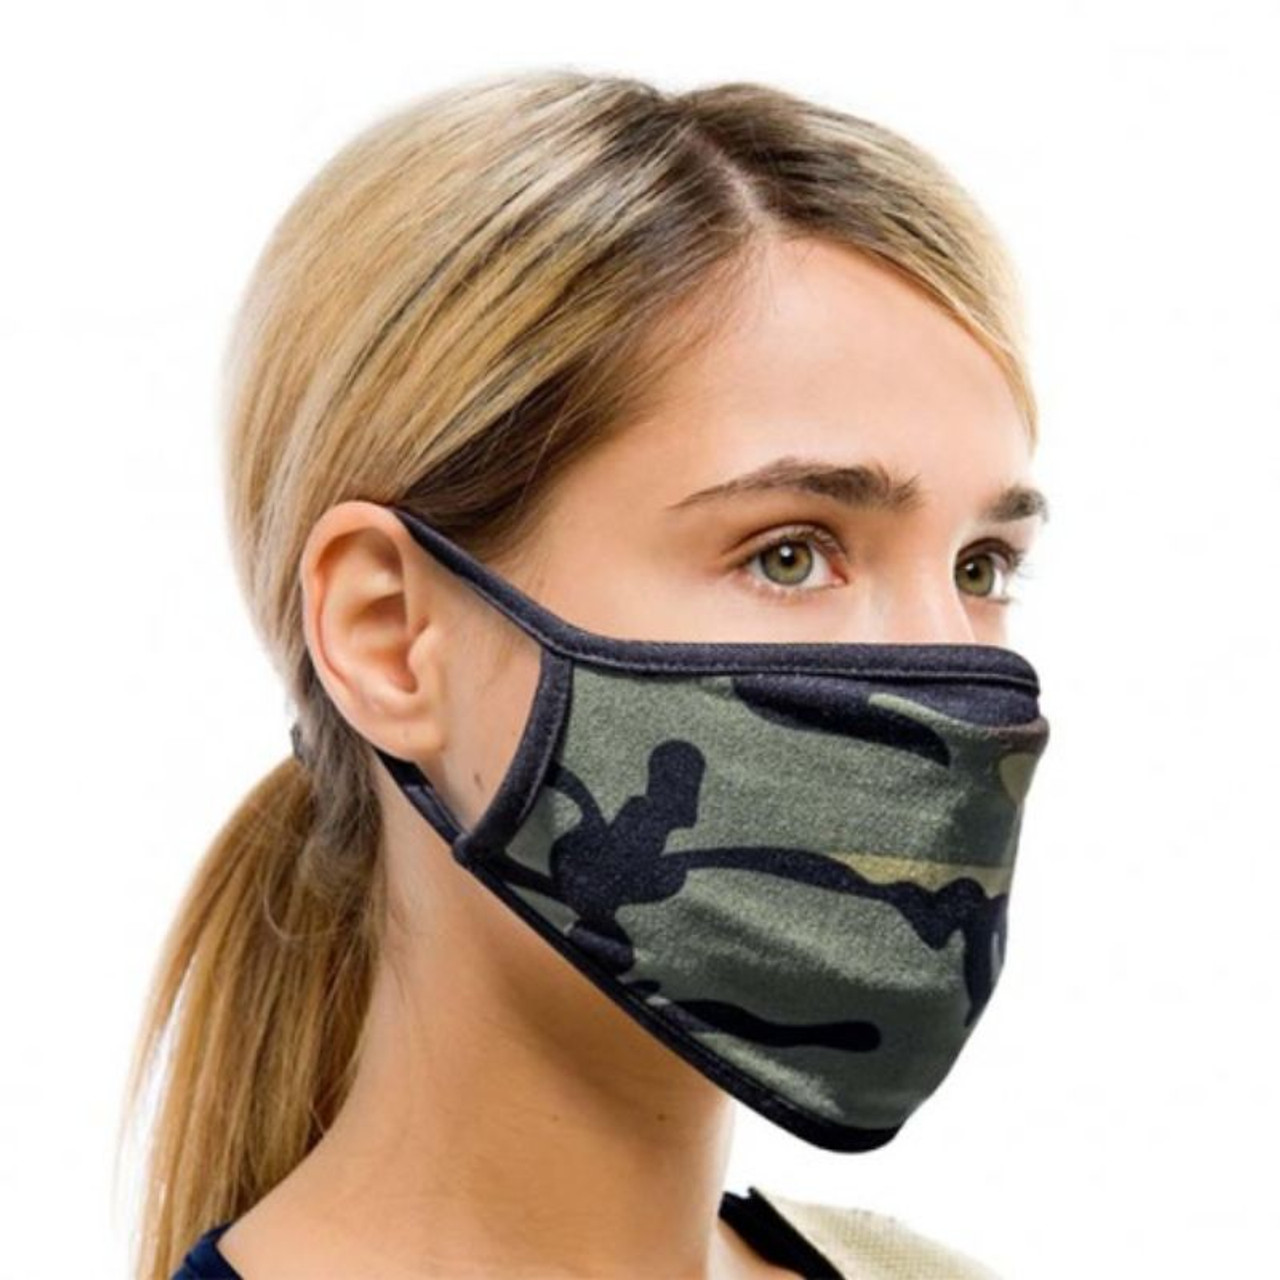 Fabric Non-Medical Face Masks - 6 Pack